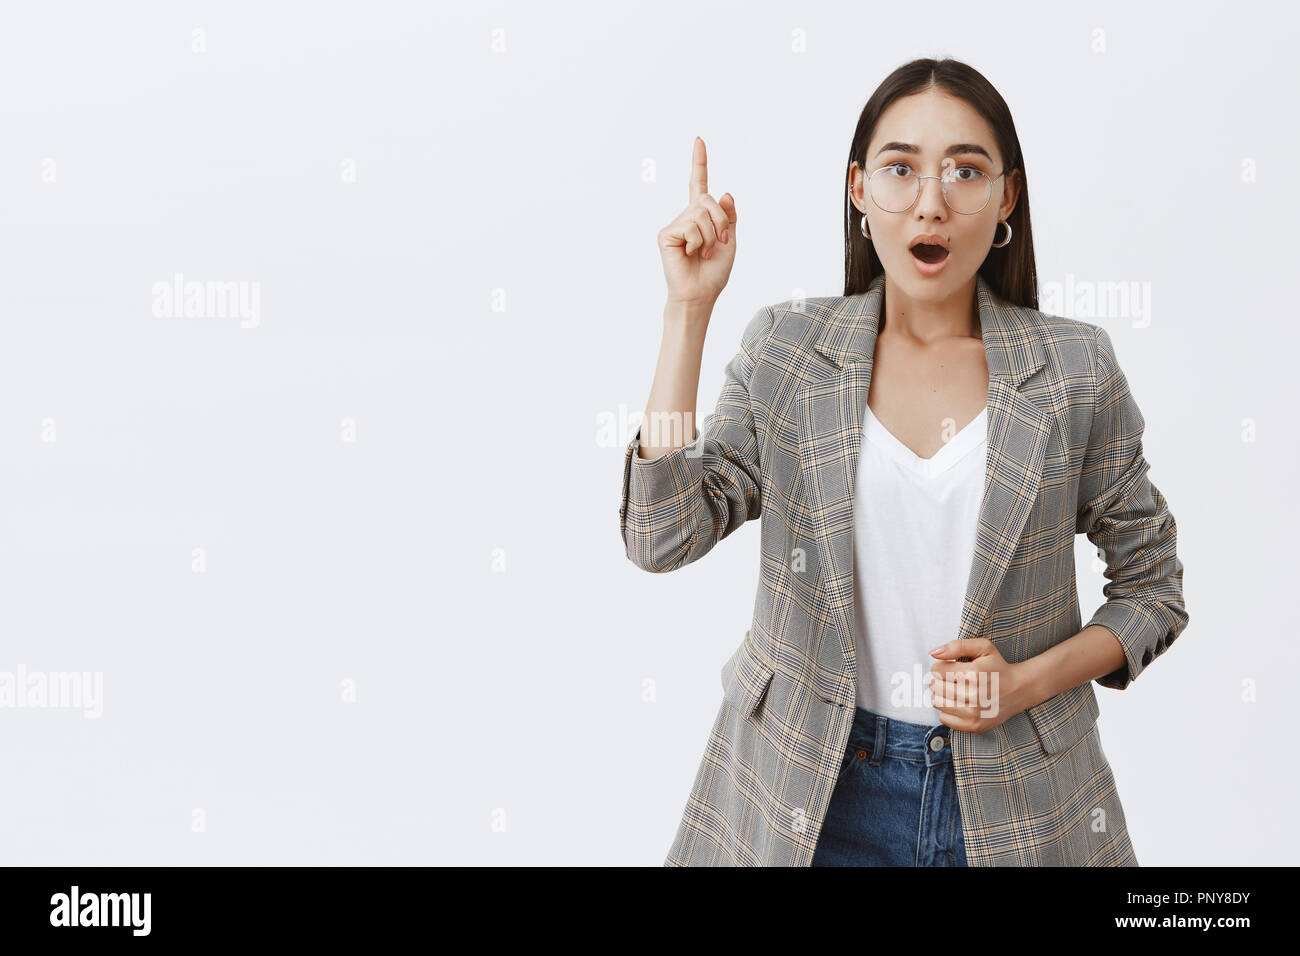 Girl finally have idea, adding suggestion during office meeting. Intense thrilled adult female in glasses and jacket, lifting index finger in eureka gesture, gasping, saying interesting thought - Stock Image